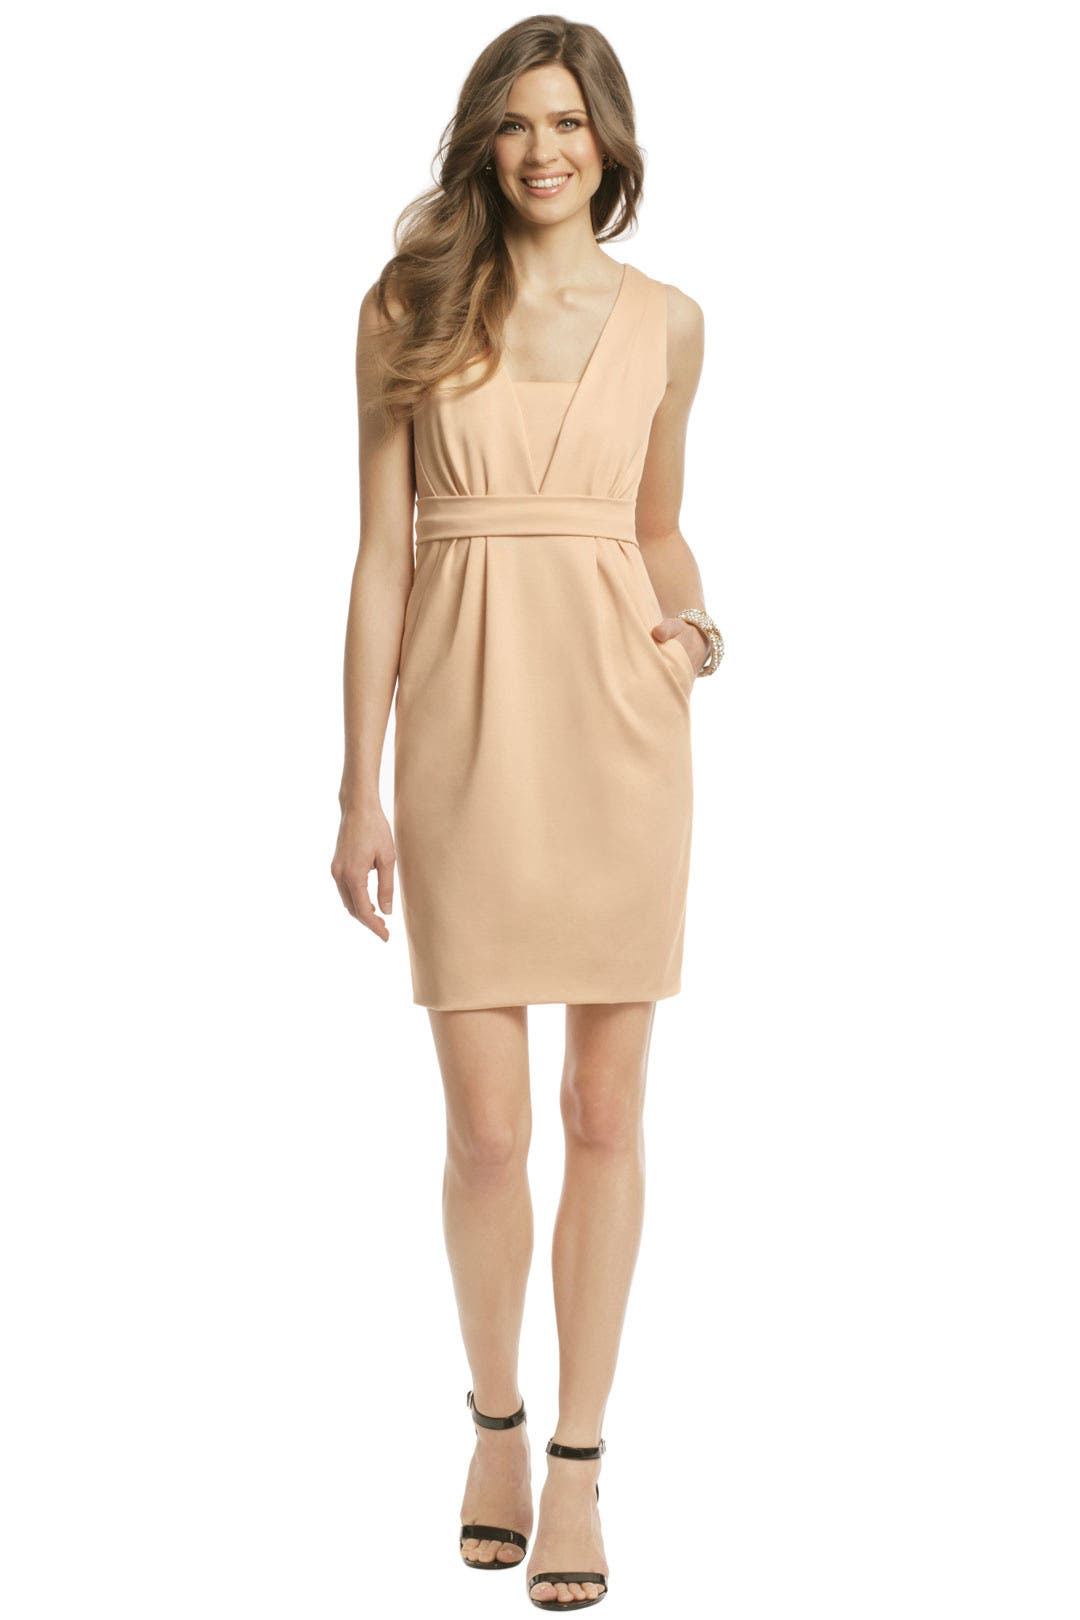 White Peach Dress by Moschino